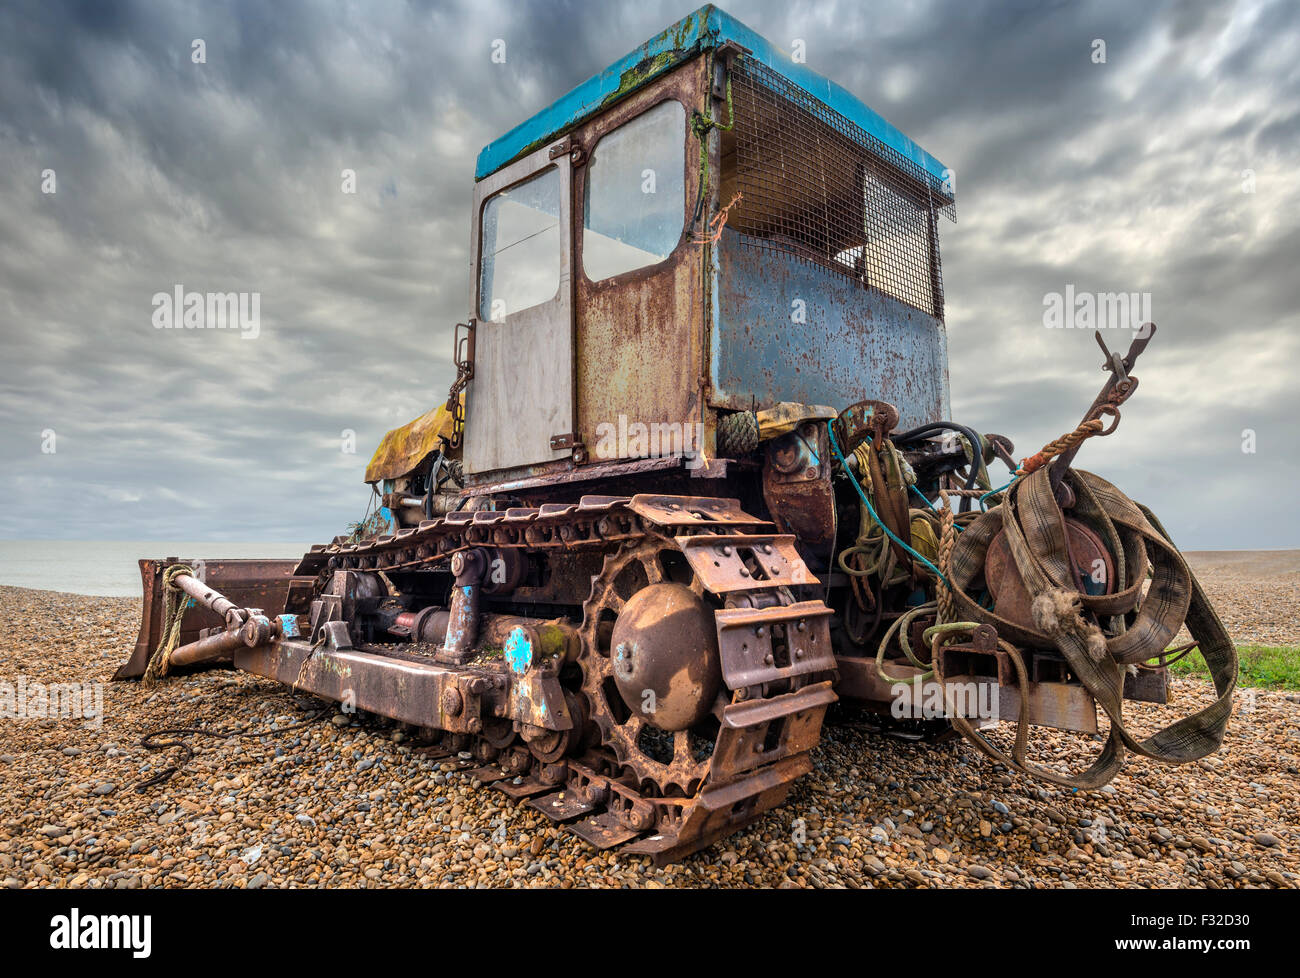 Old rusty bulldozer used for launching fishing boats - Stock Image